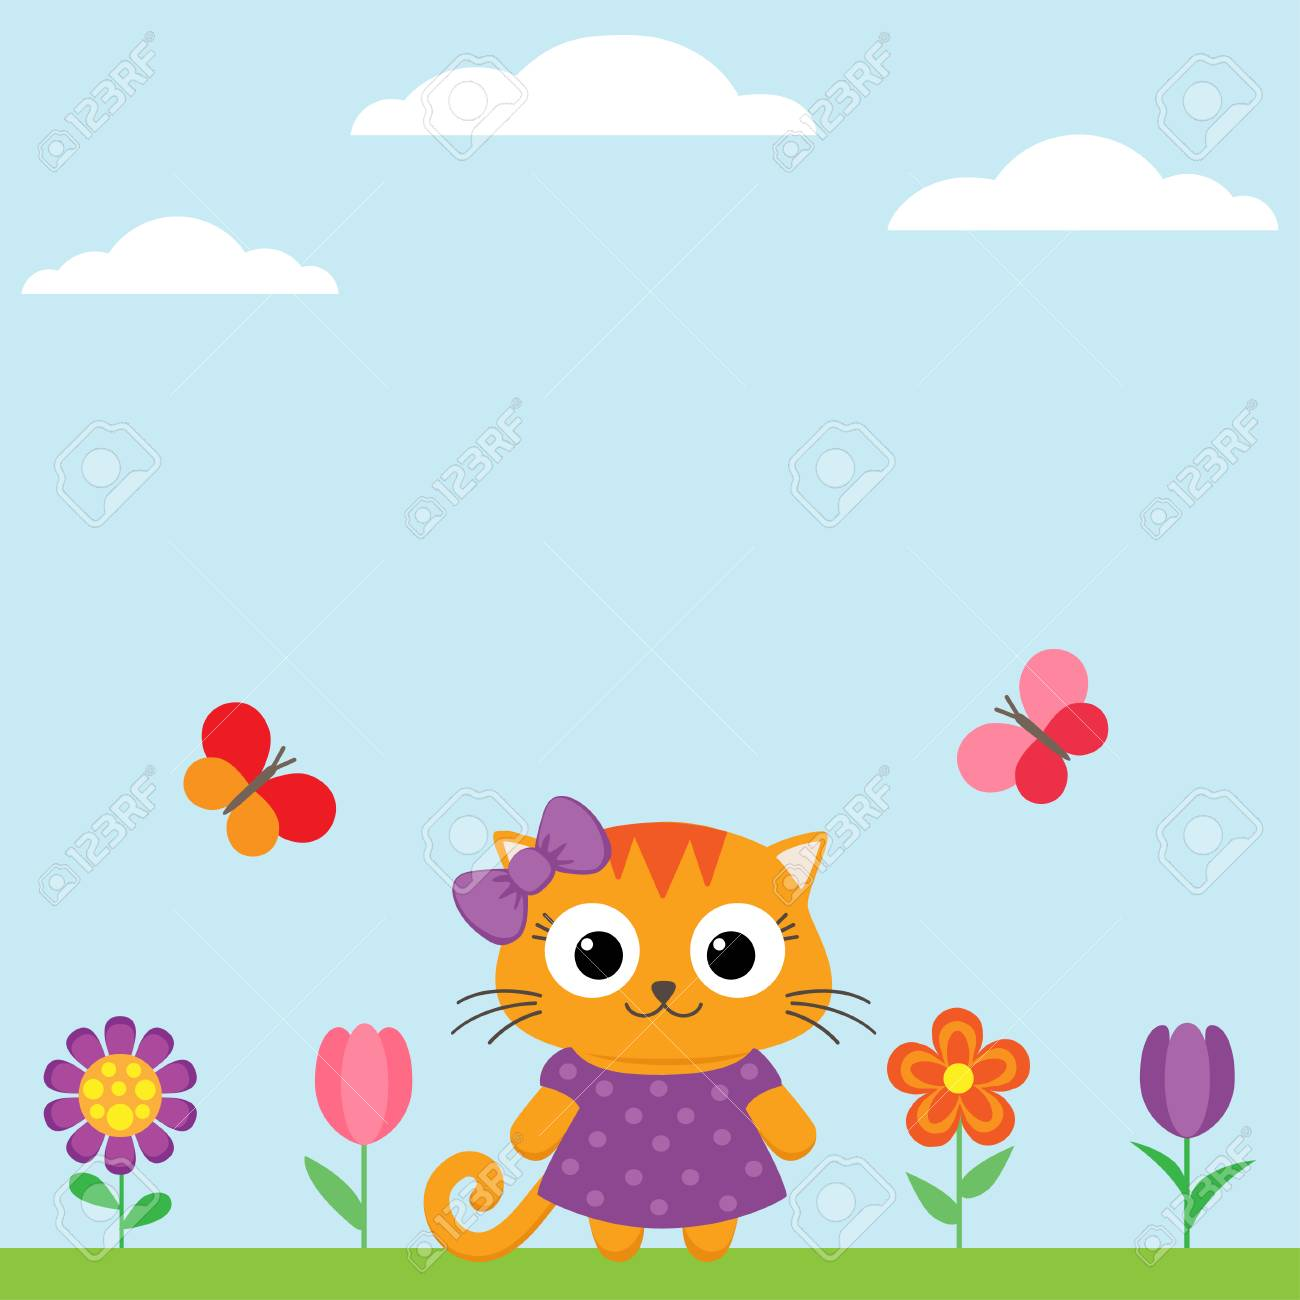 Spring Flower Background With Flowers And Butterflies Royalty Free